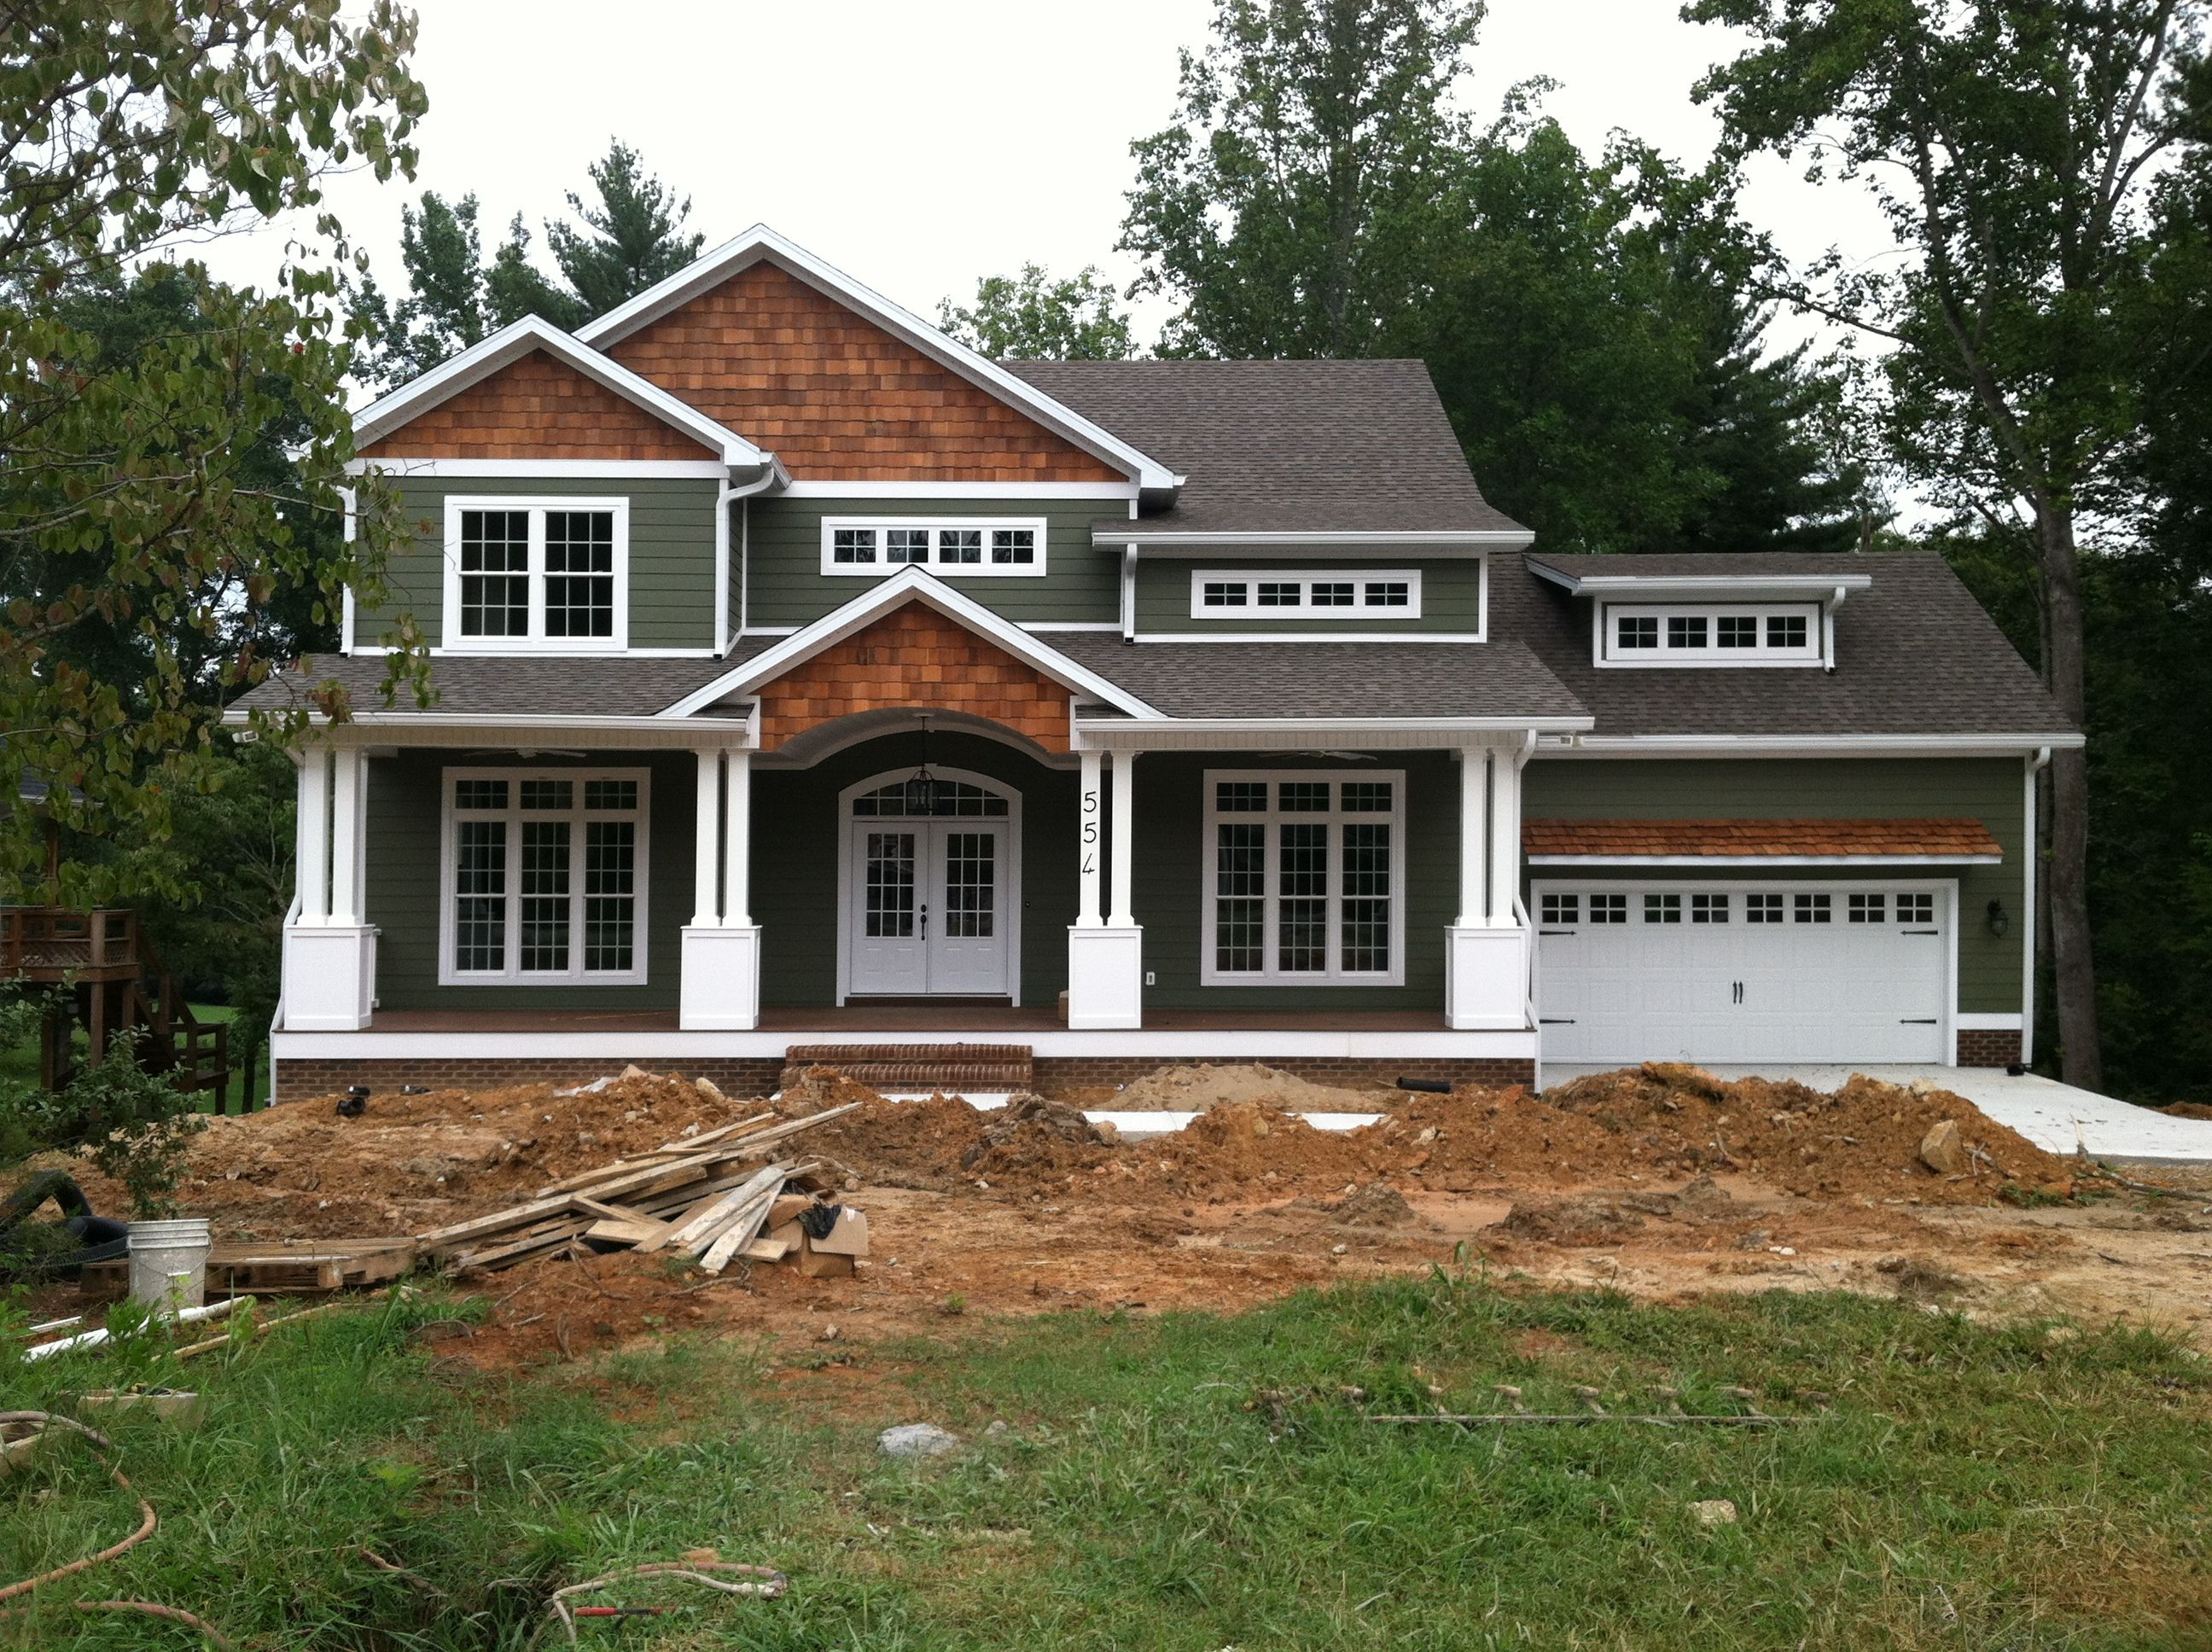 Craftsman exterior house paint ideas - Craftsman Style Home Turn The Garage To The Side Change The Color Craftsman Style Exteriorcraftsman Homescraftsman